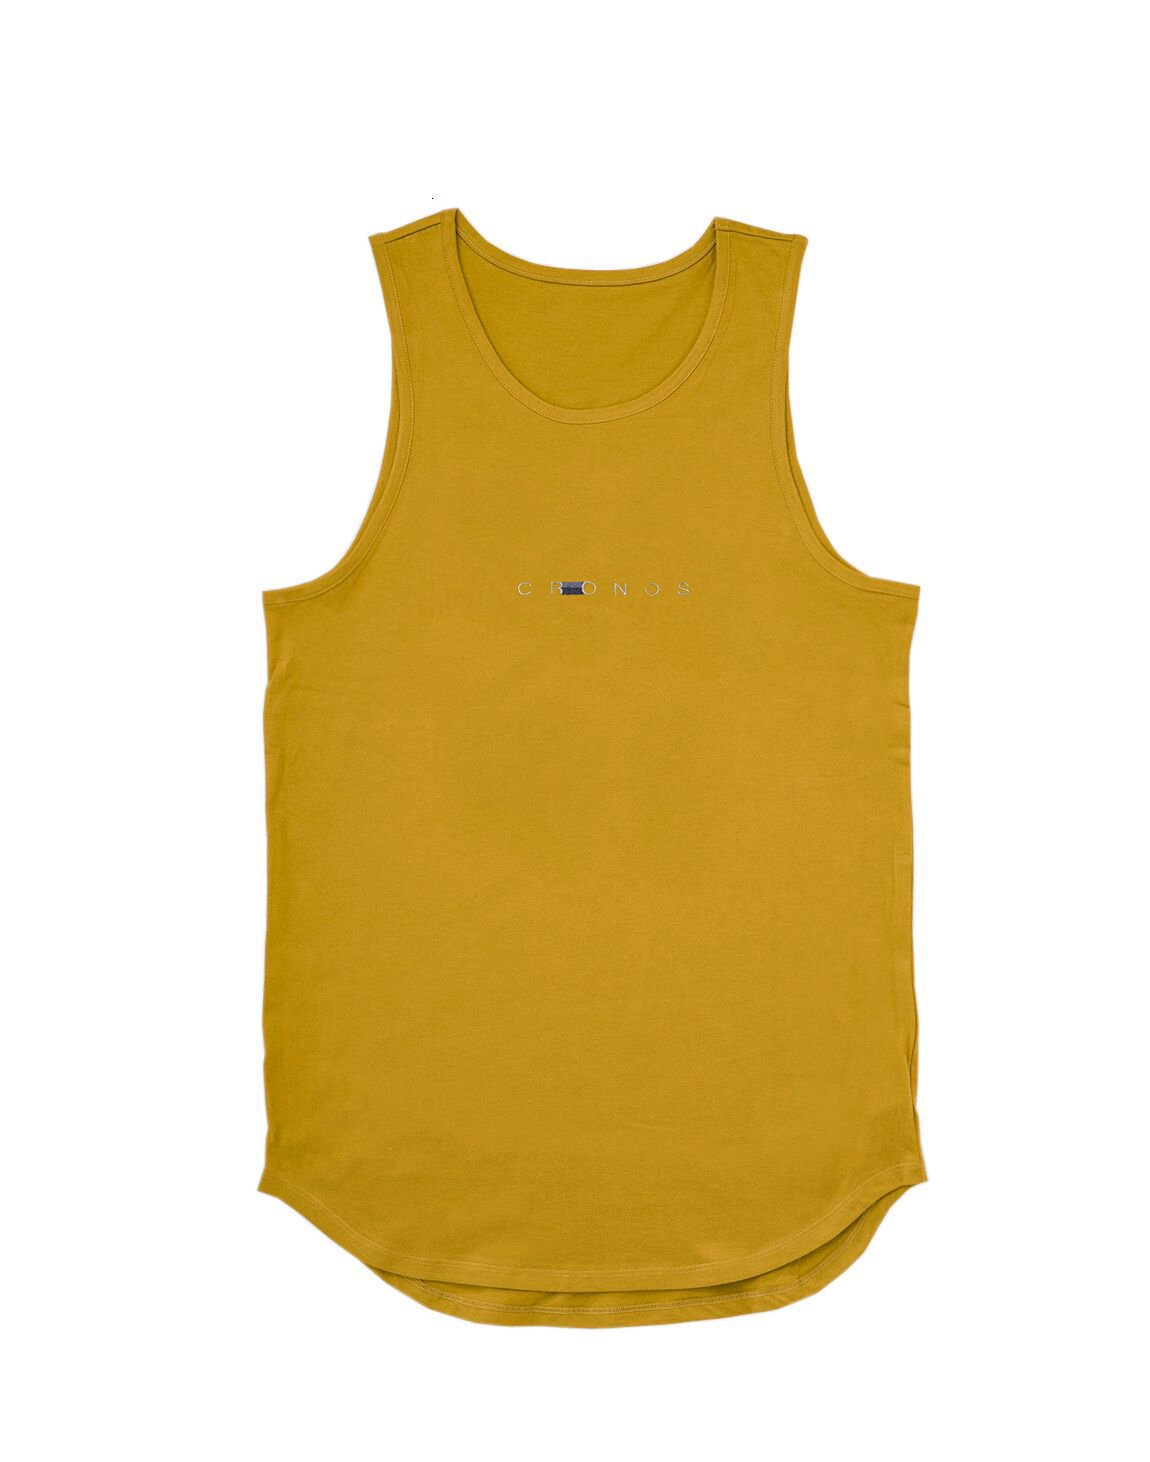 <img class='new_mark_img1' src='https://img.shop-pro.jp/img/new/icons55.gif' style='border:none;display:inline;margin:0px;padding:0px;width:auto;' />CRONOS STITCH TANK TOP【YELLOW】